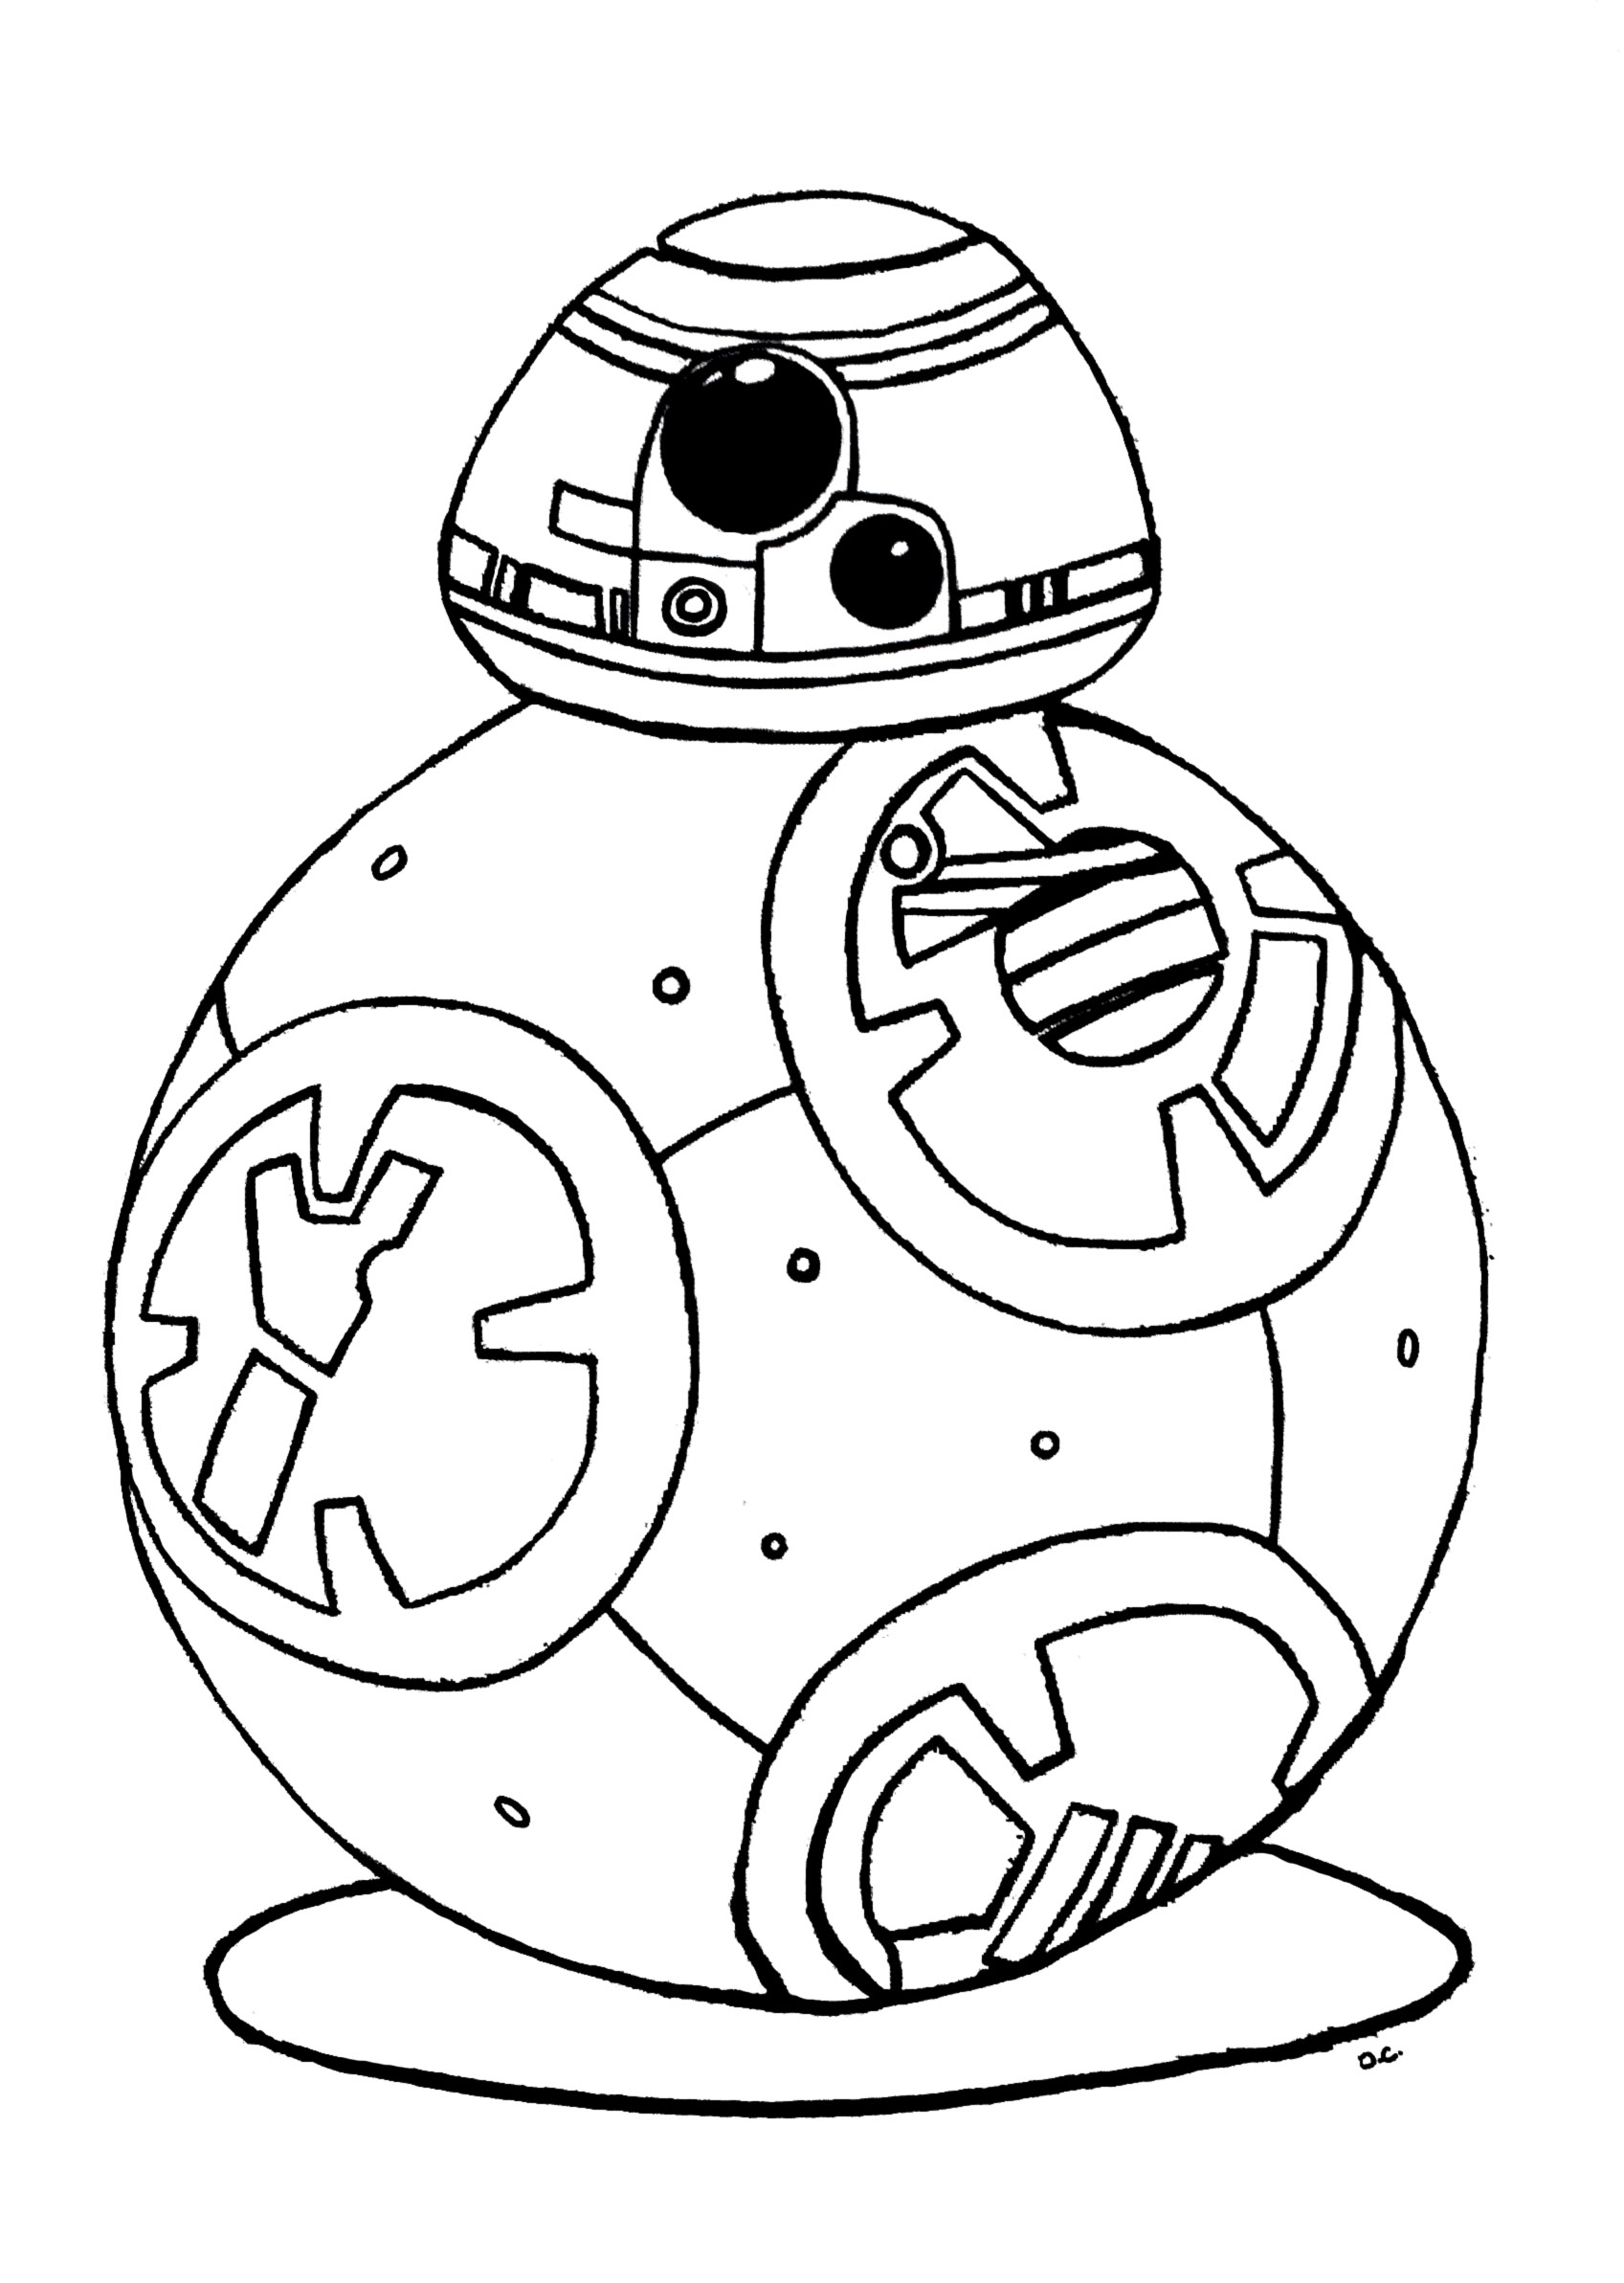 star wars coloring pictures star wars free coloring pages to print free coloring sheets star pictures wars coloring